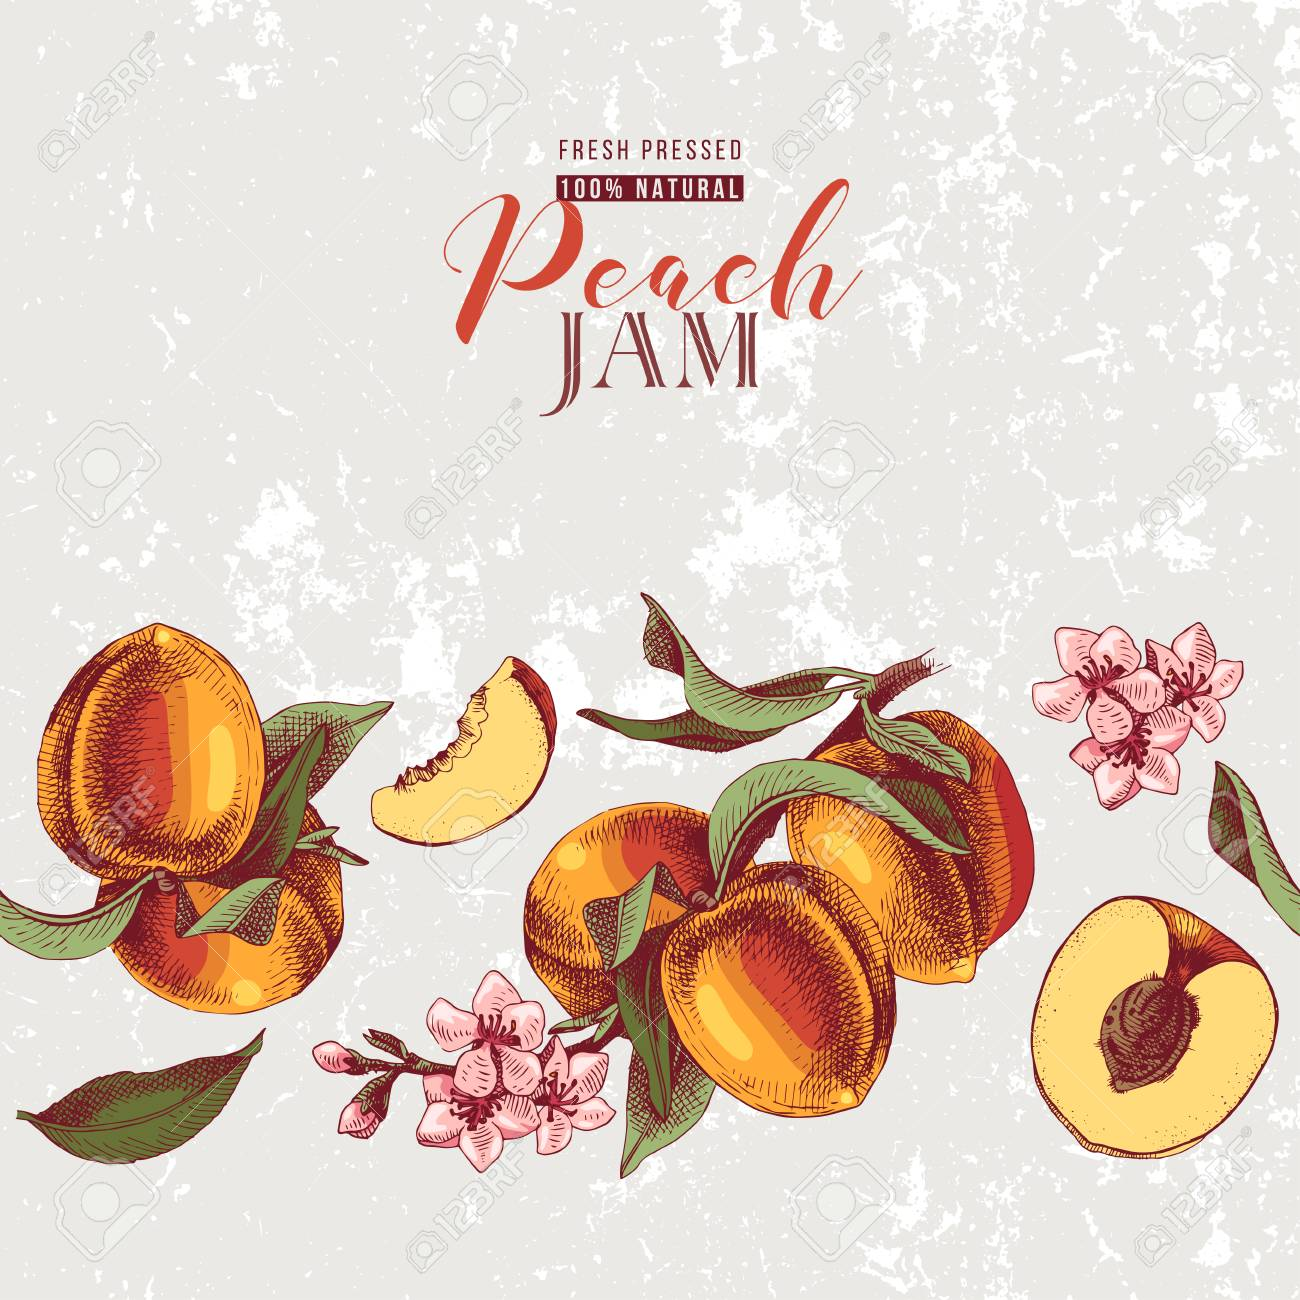 Background with hand drawn peach seamless border in vintage style. Vector illustration - 126871337